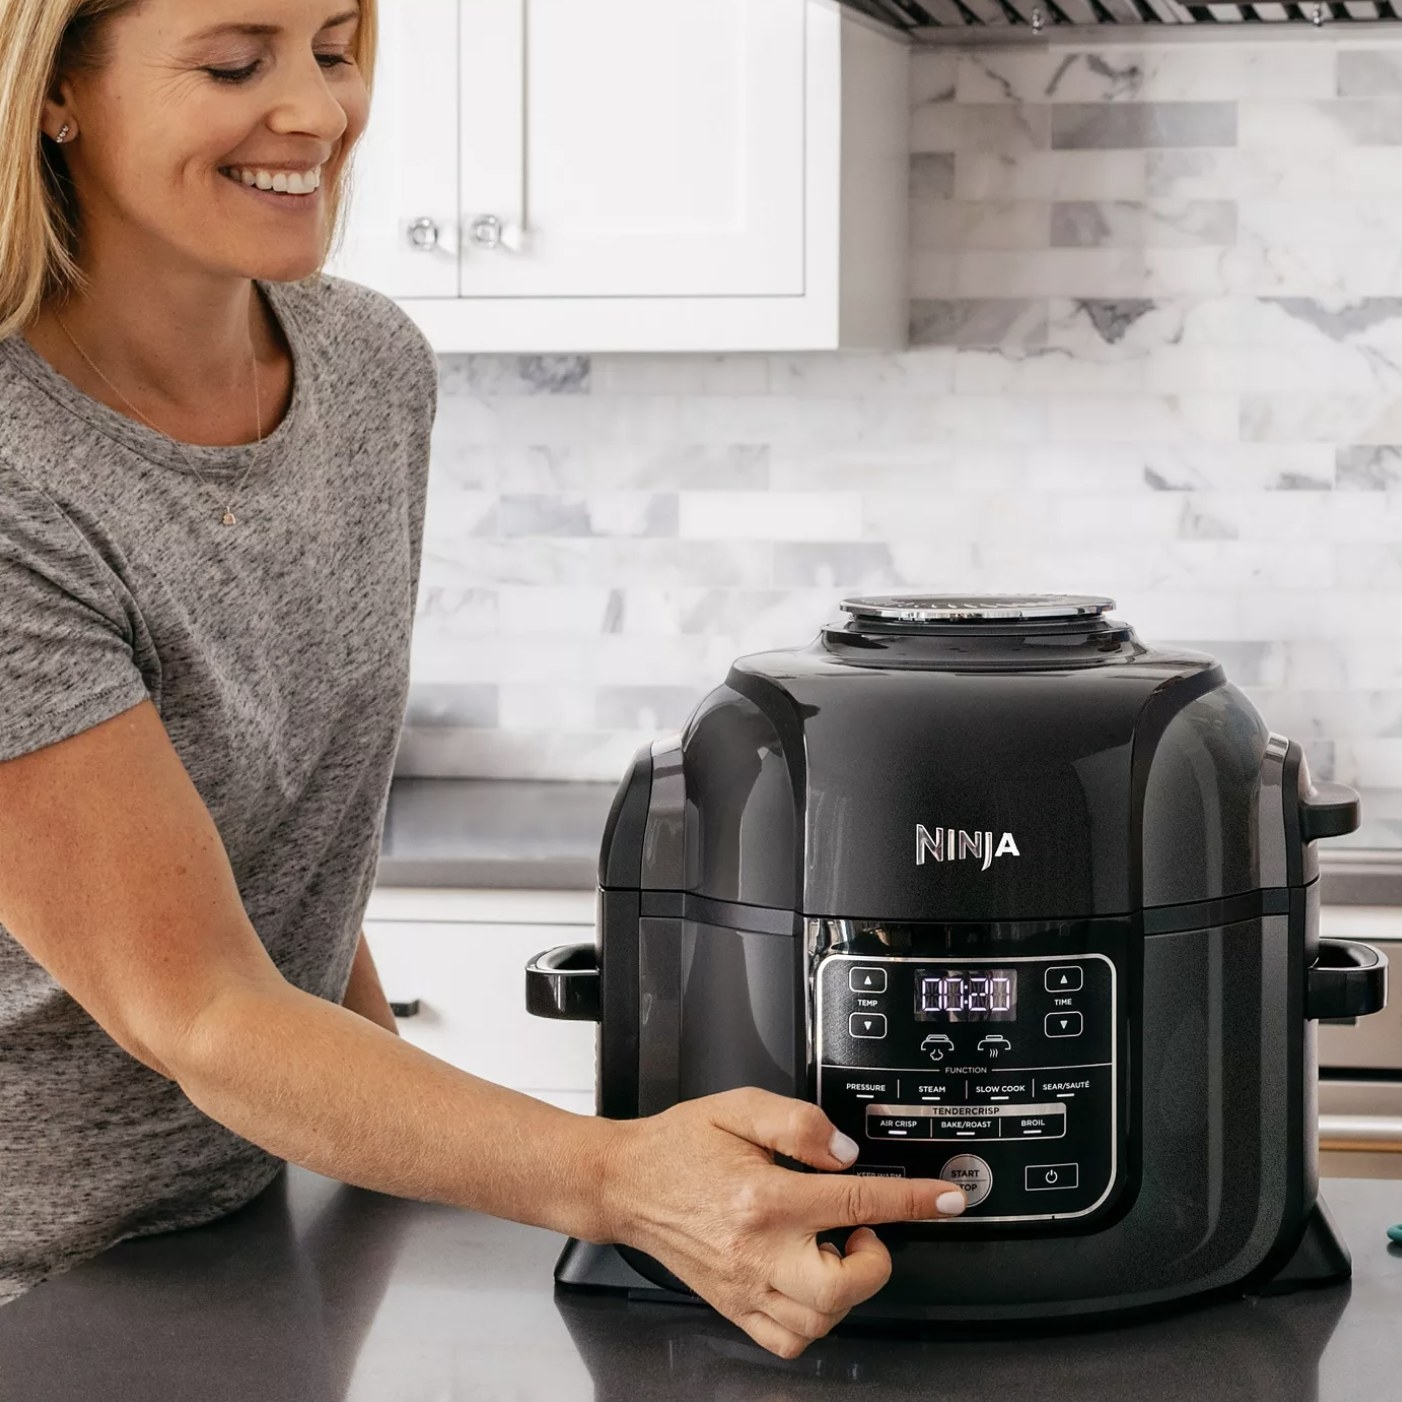 Model is pressing a button on a Ninja pressure cooker and air fryer